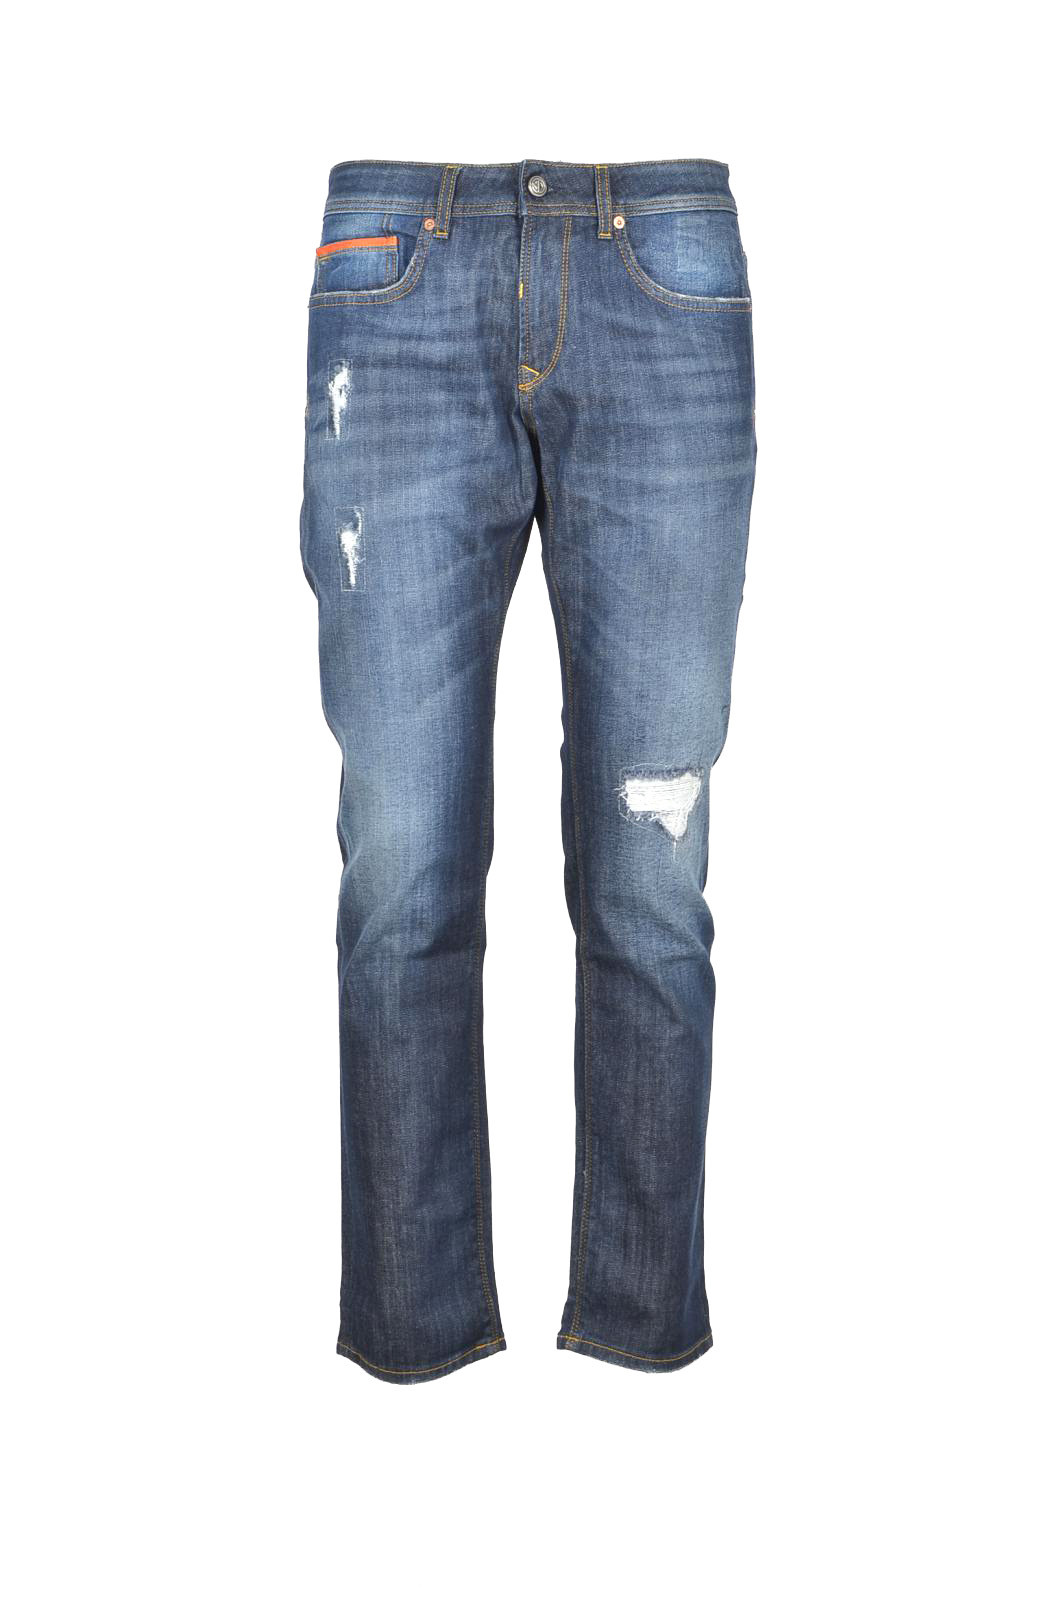 Marchio 3d Broken Left And Right Genere Uomo Tipologia Jeans Stagione Autun…